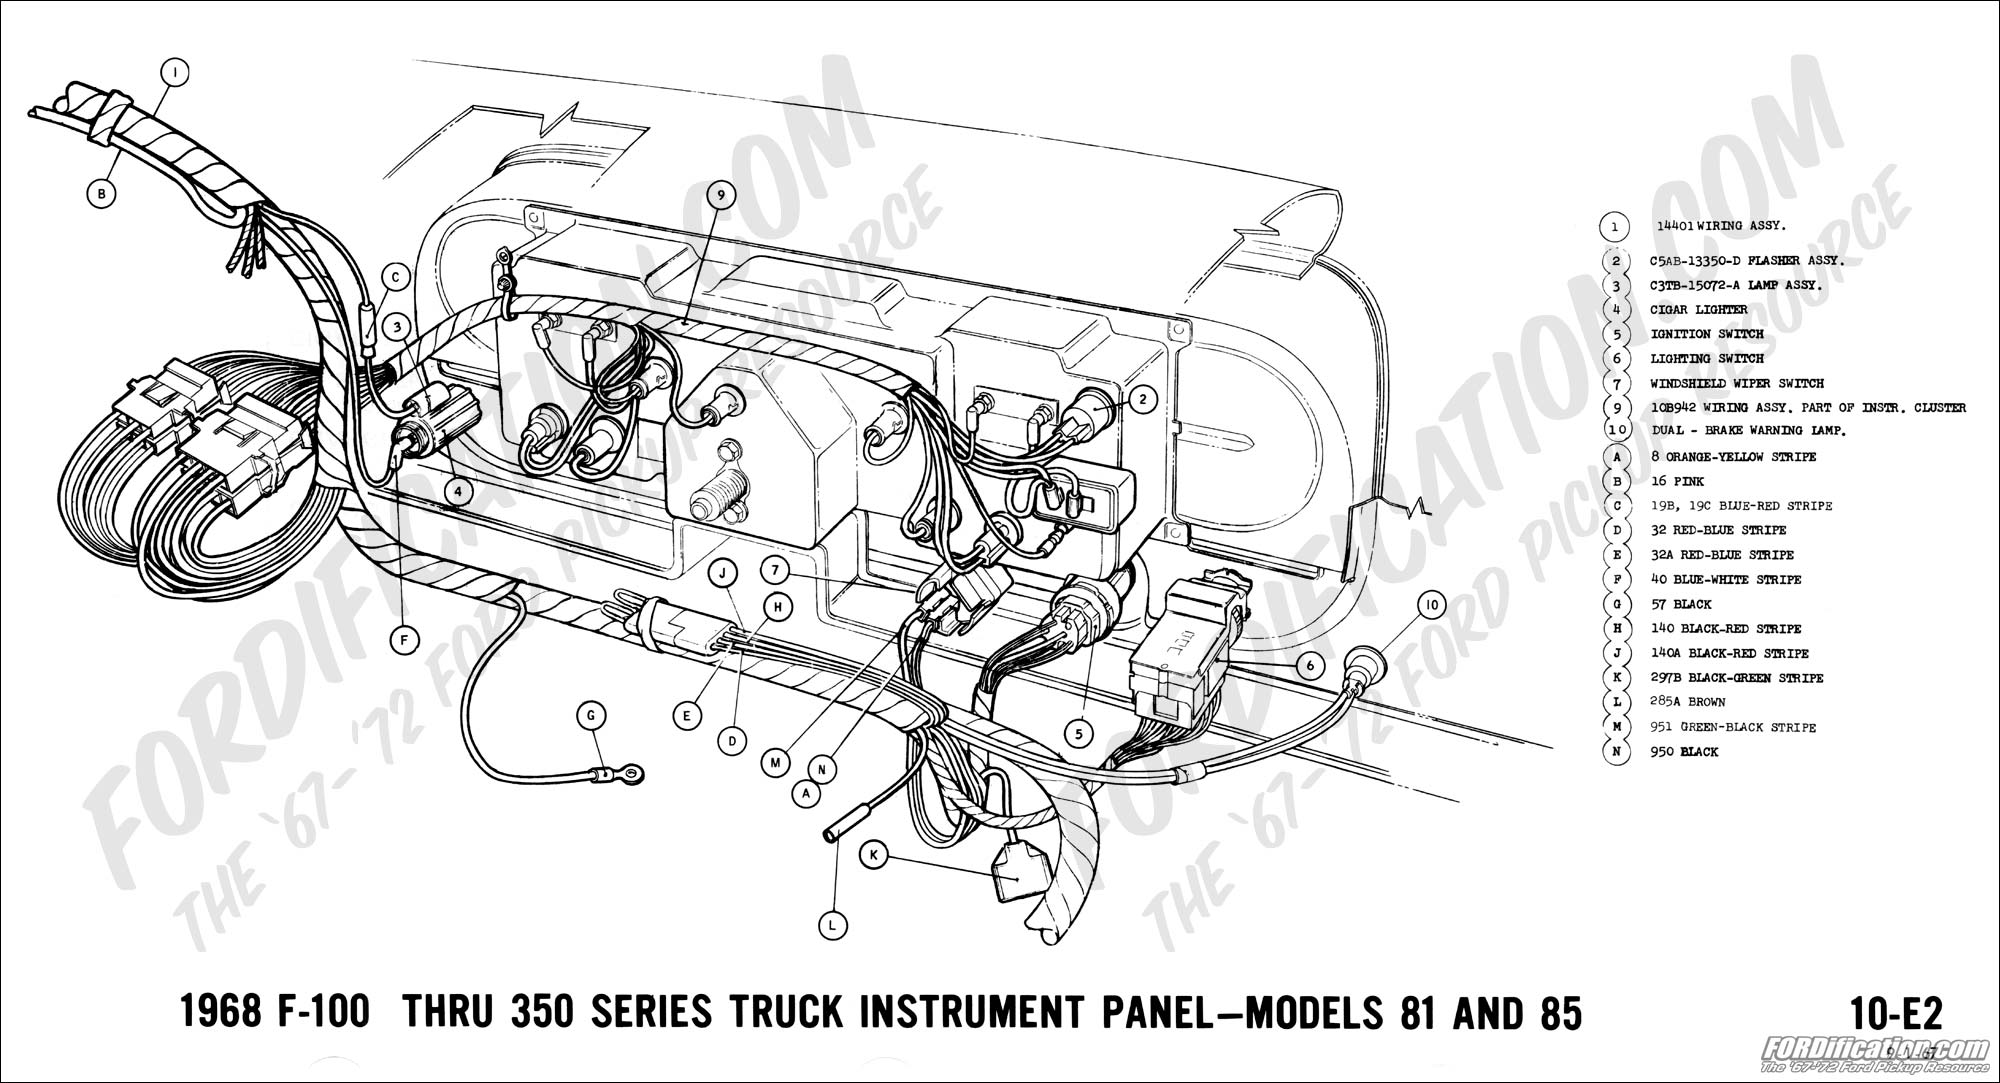 Trans Wiring Diagram 2007 Dodge 350 List Of Schematic Circuit Ford Obd1 Pinout Truck Technical Drawings And Schematics Section H Rh Fordification Com